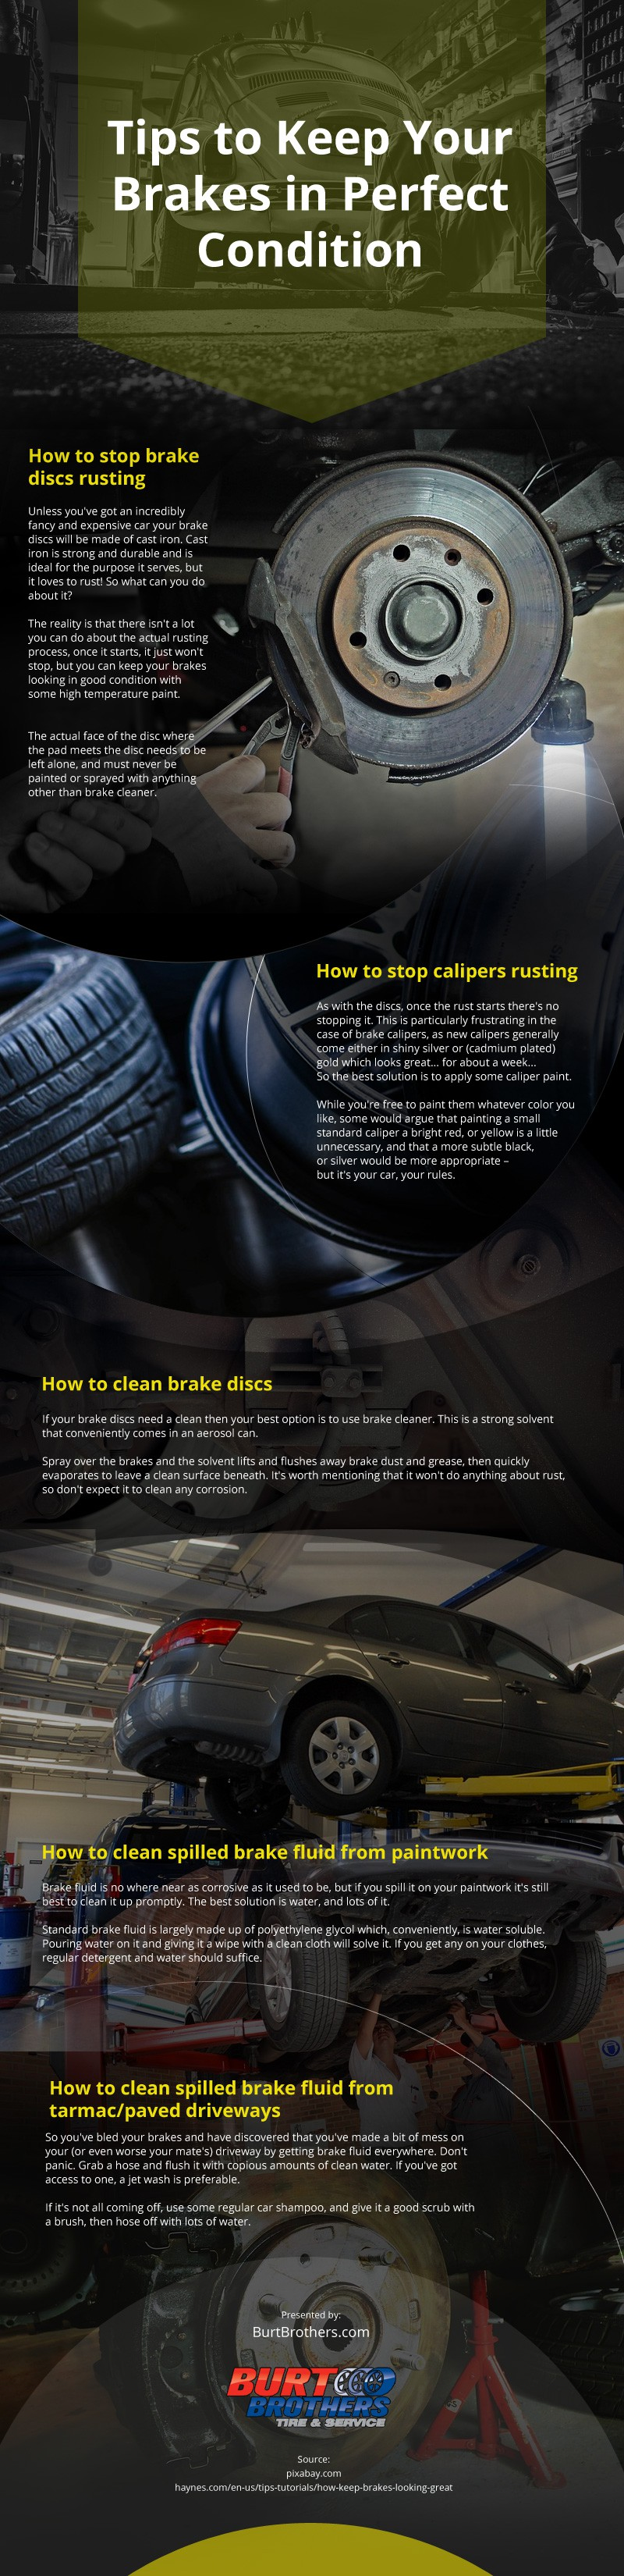 Tips to Keep Your Brakes in Perfect Condition [infographic]